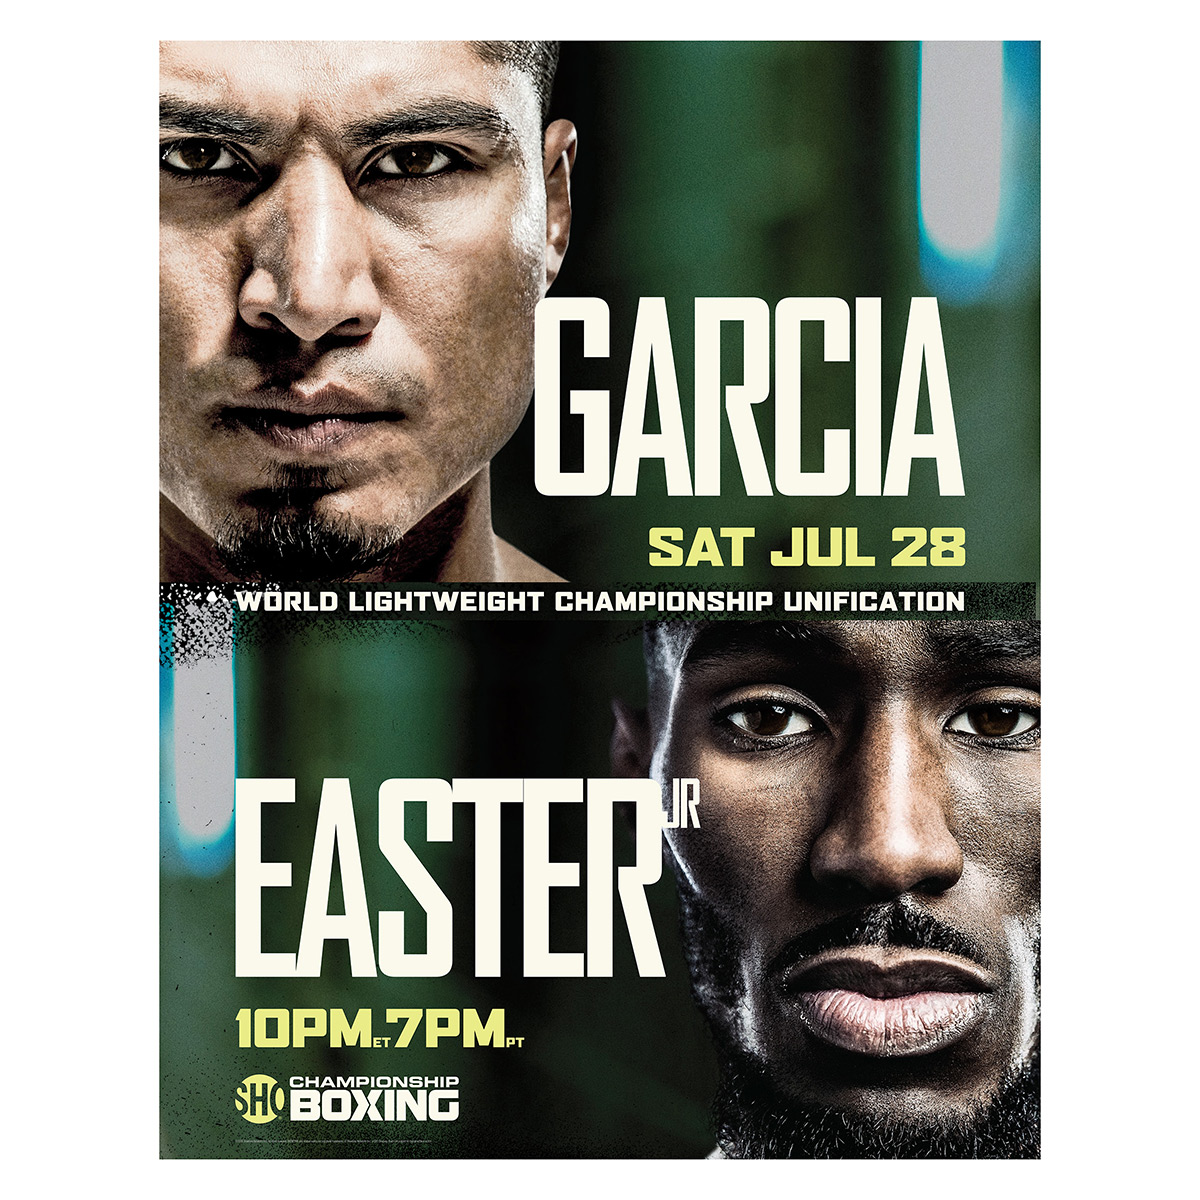 Garcia vs Easter Jr. Giclee (18x24)